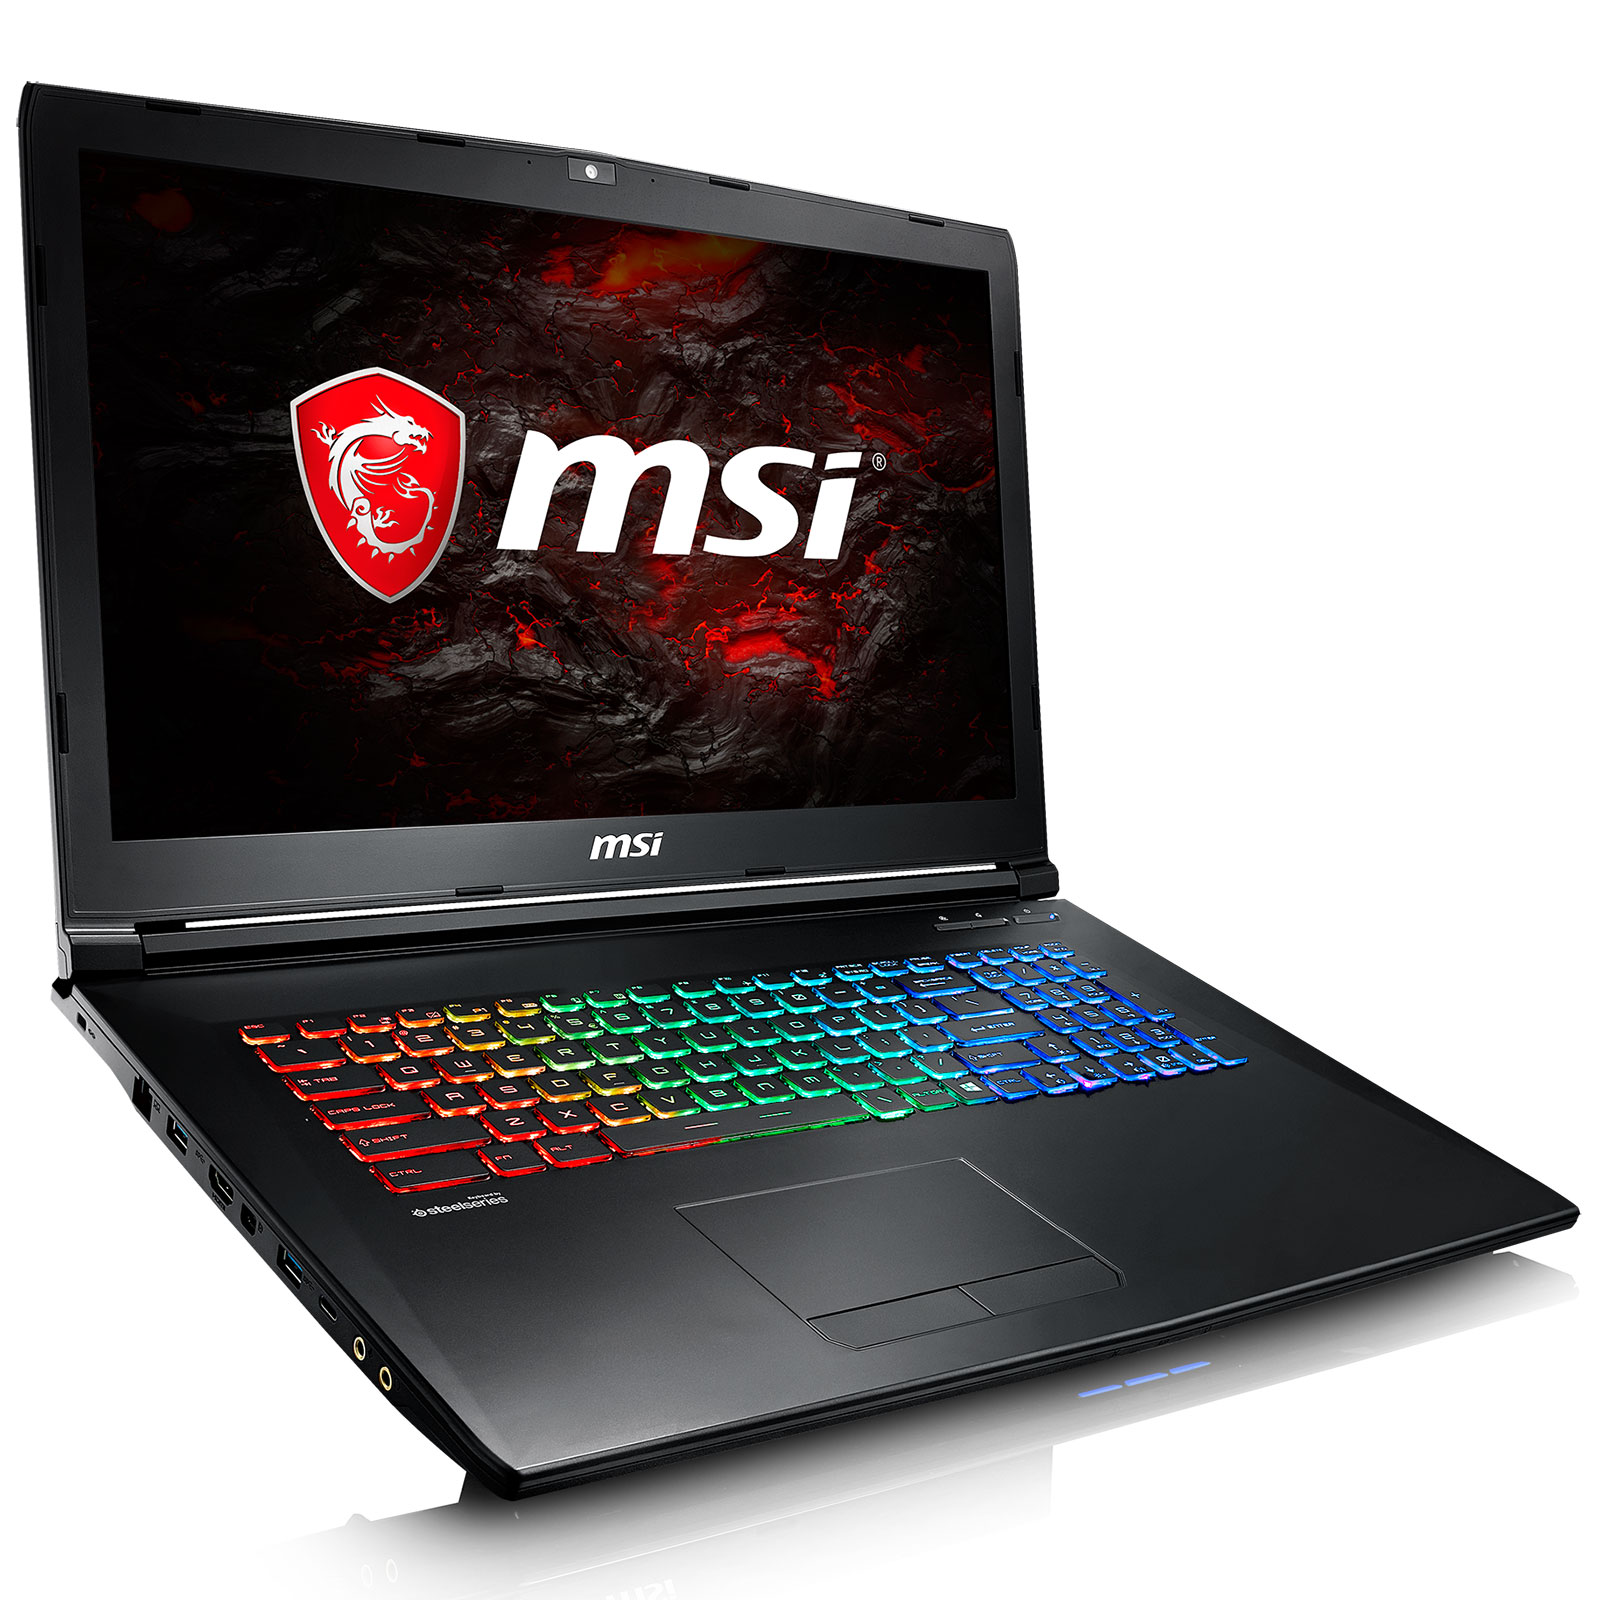 msi ordinateur portable